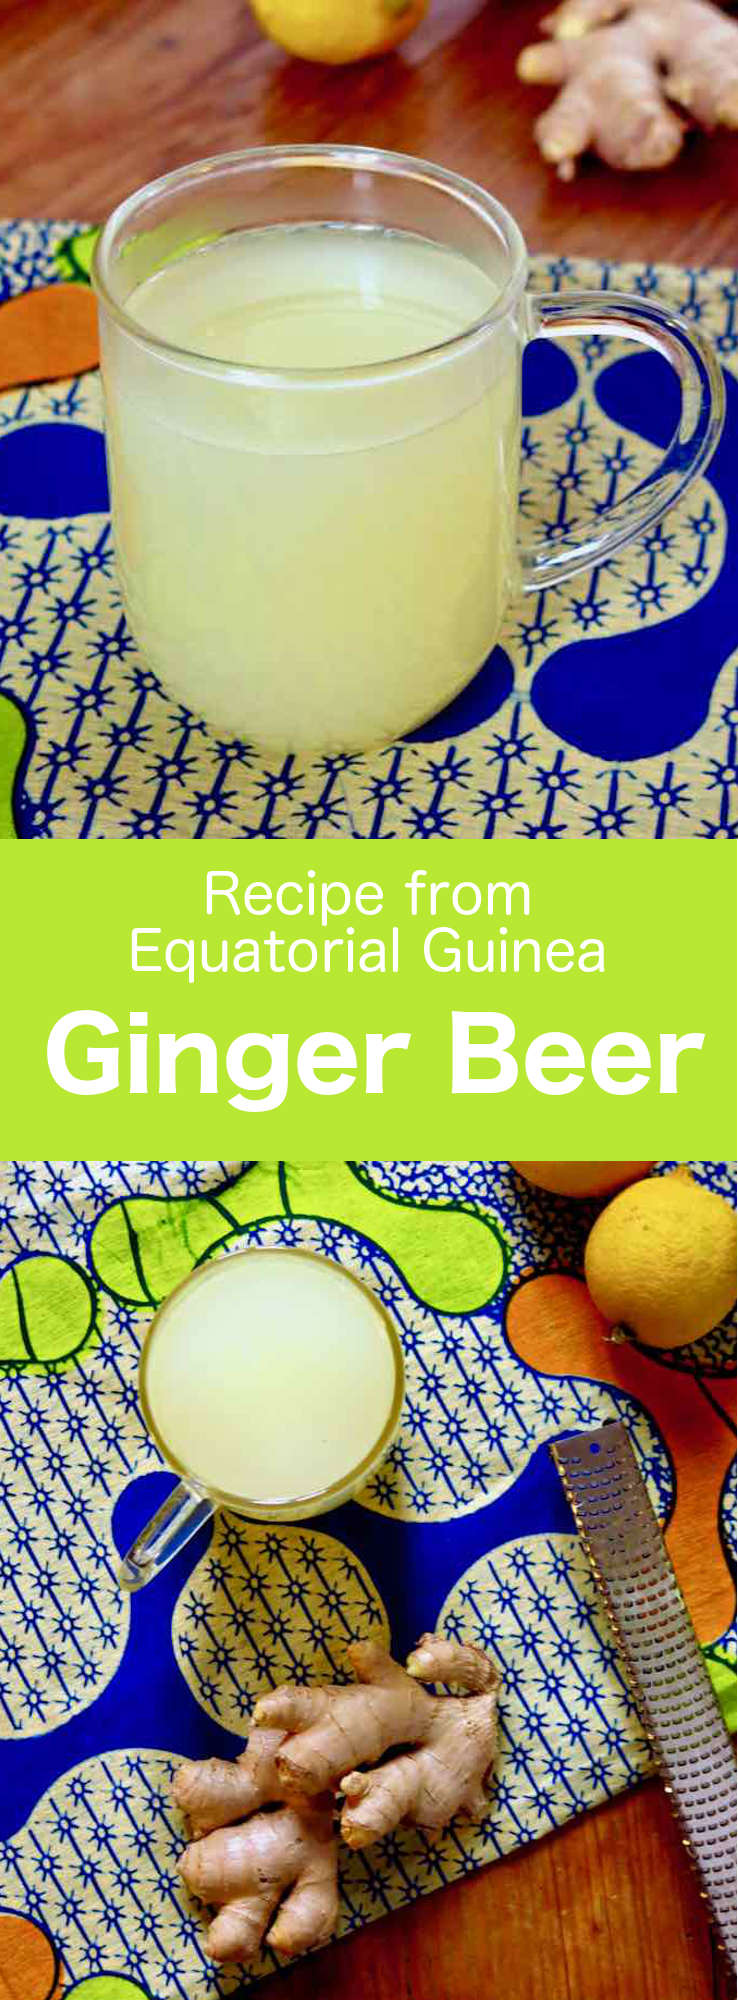 Ginja beer (ginger beer) is an alcohol-free carbonated beverage produced by the natural fermentation of ginger, yeast and sugar. #EquatorialGuinea #AfricanCuisine #AfricanRecipe #WorldCuisine #196flavors